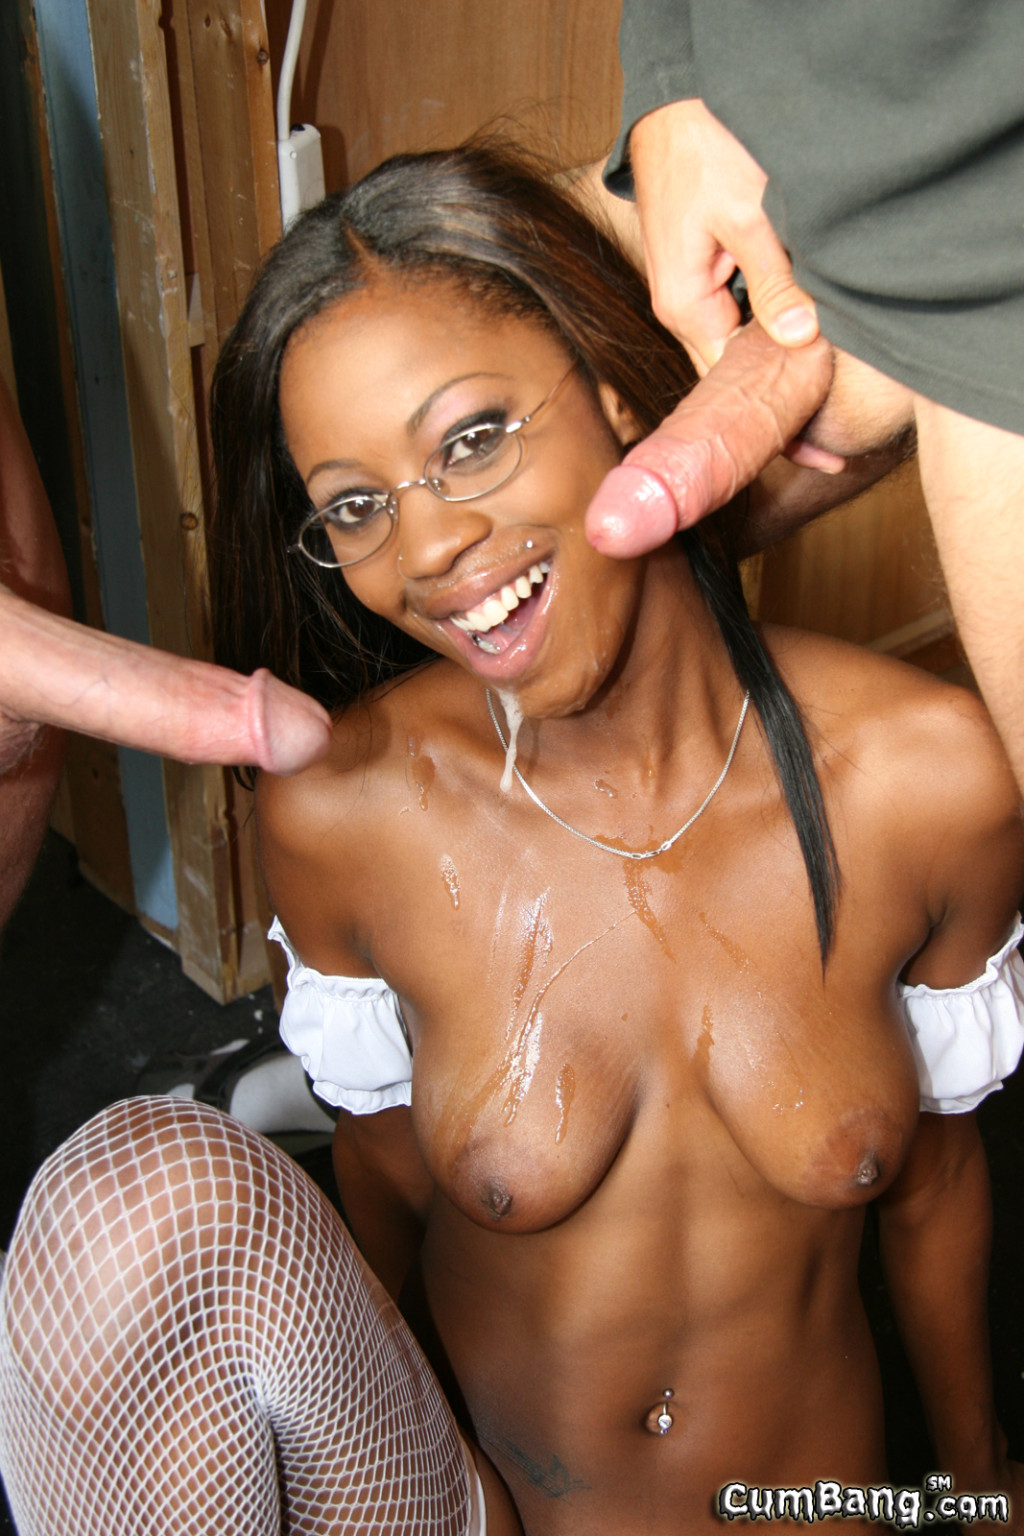 White Guy Creampie Black Girl